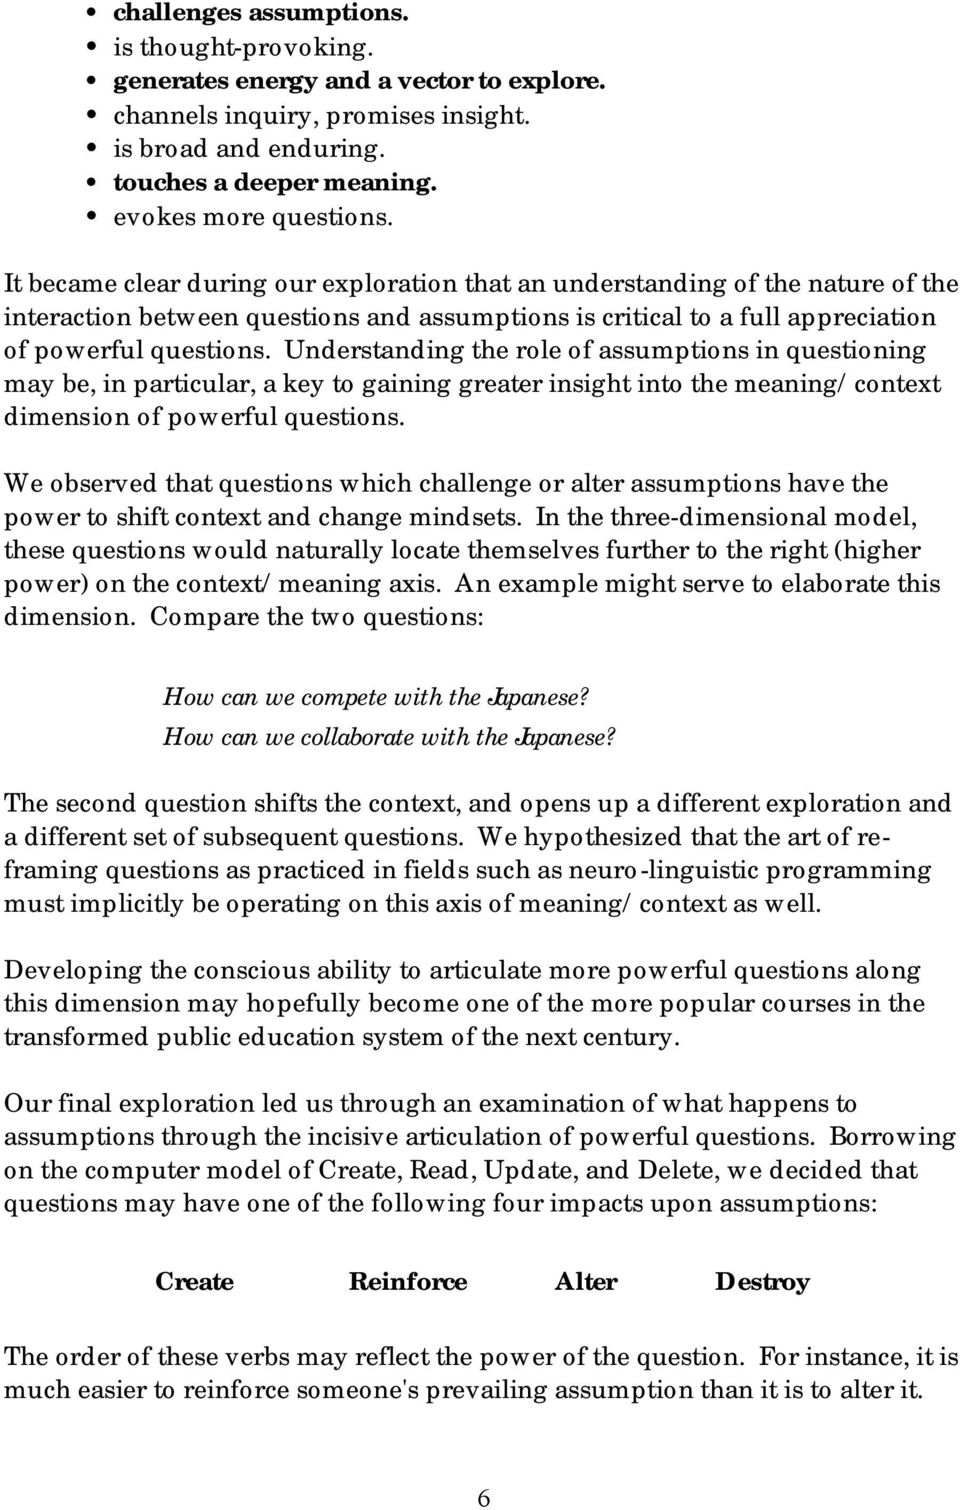 Understanding the role of assumptions in questioning may be, in particular, a key to gaining greater insight into the meaning/context dimension of powerful questions.